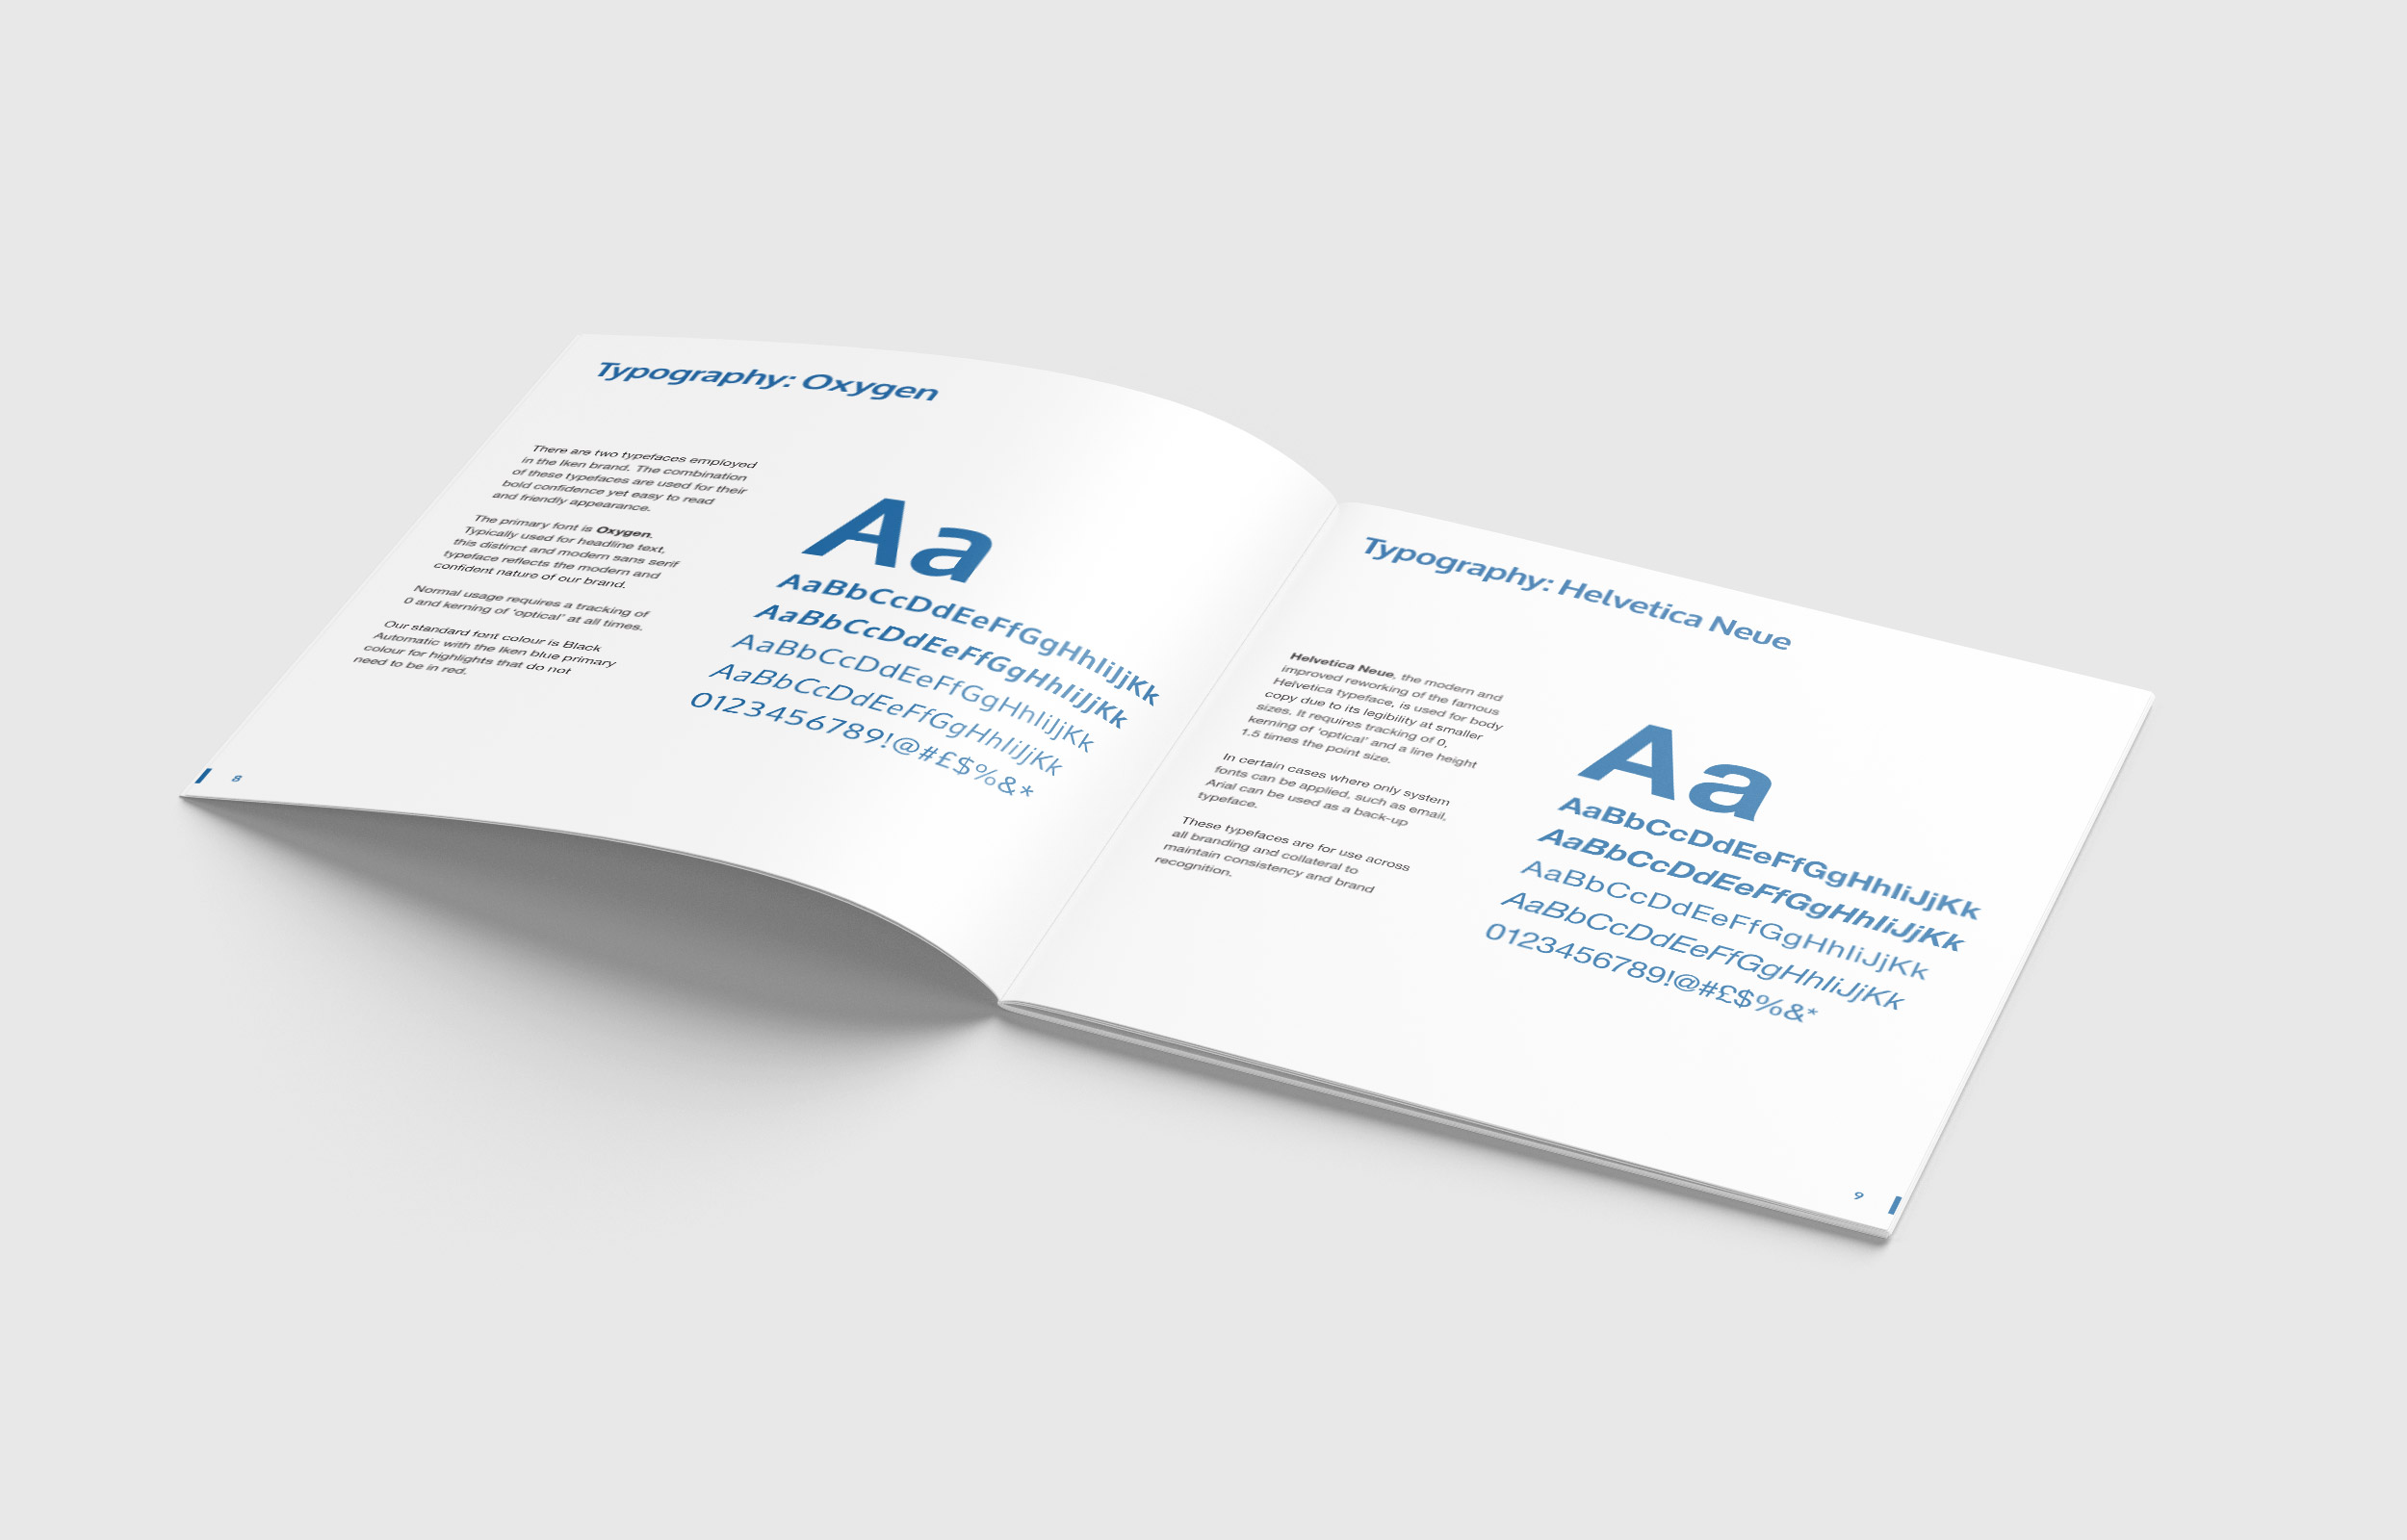 Typography guidelines in Iken Business brand guidelines